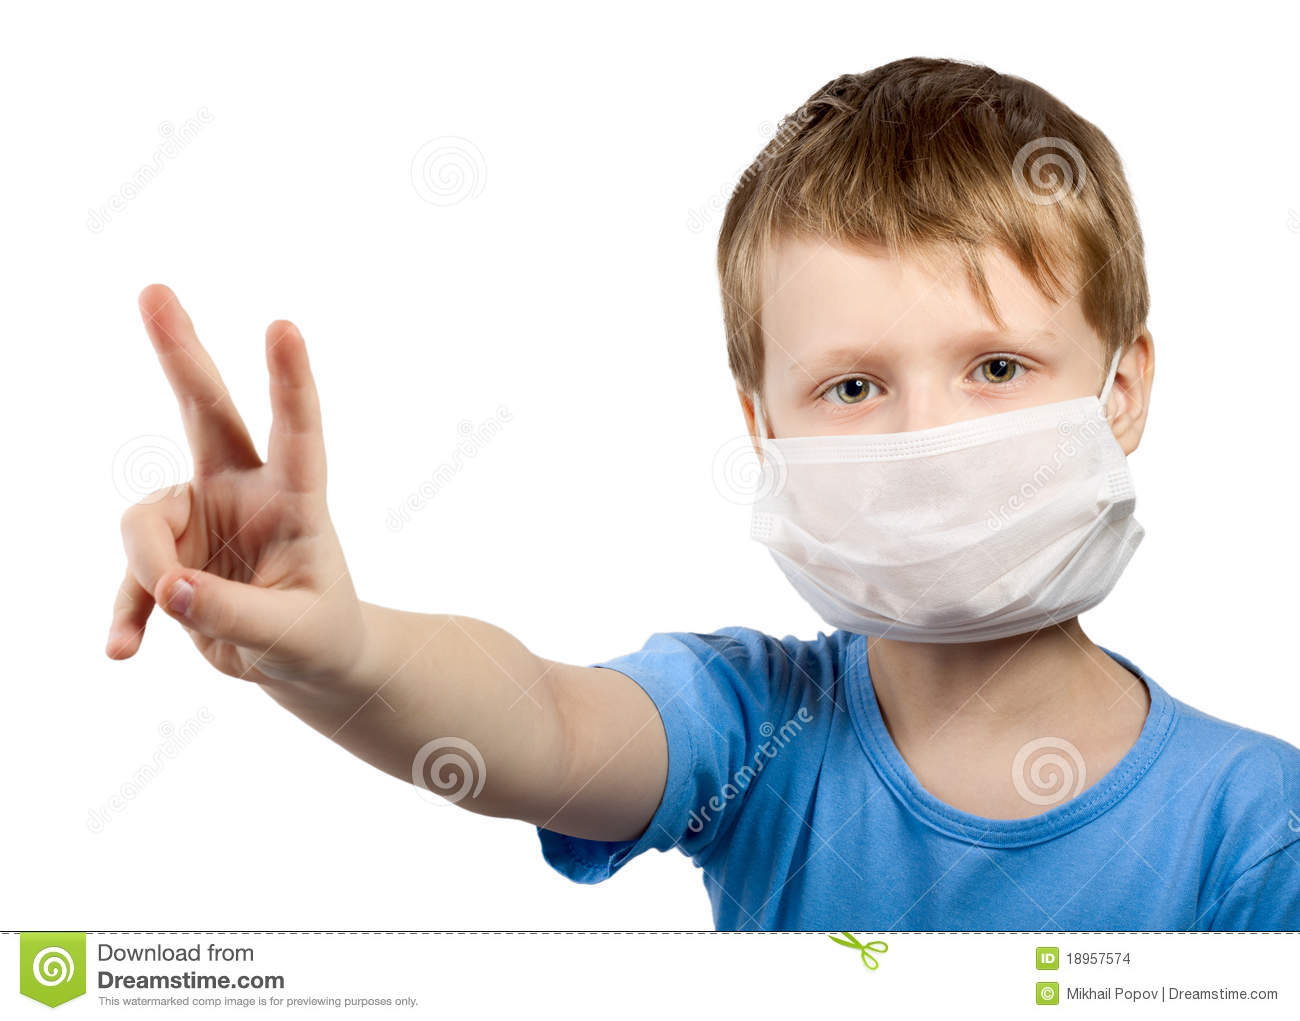 masque chirurgical grippe enfant